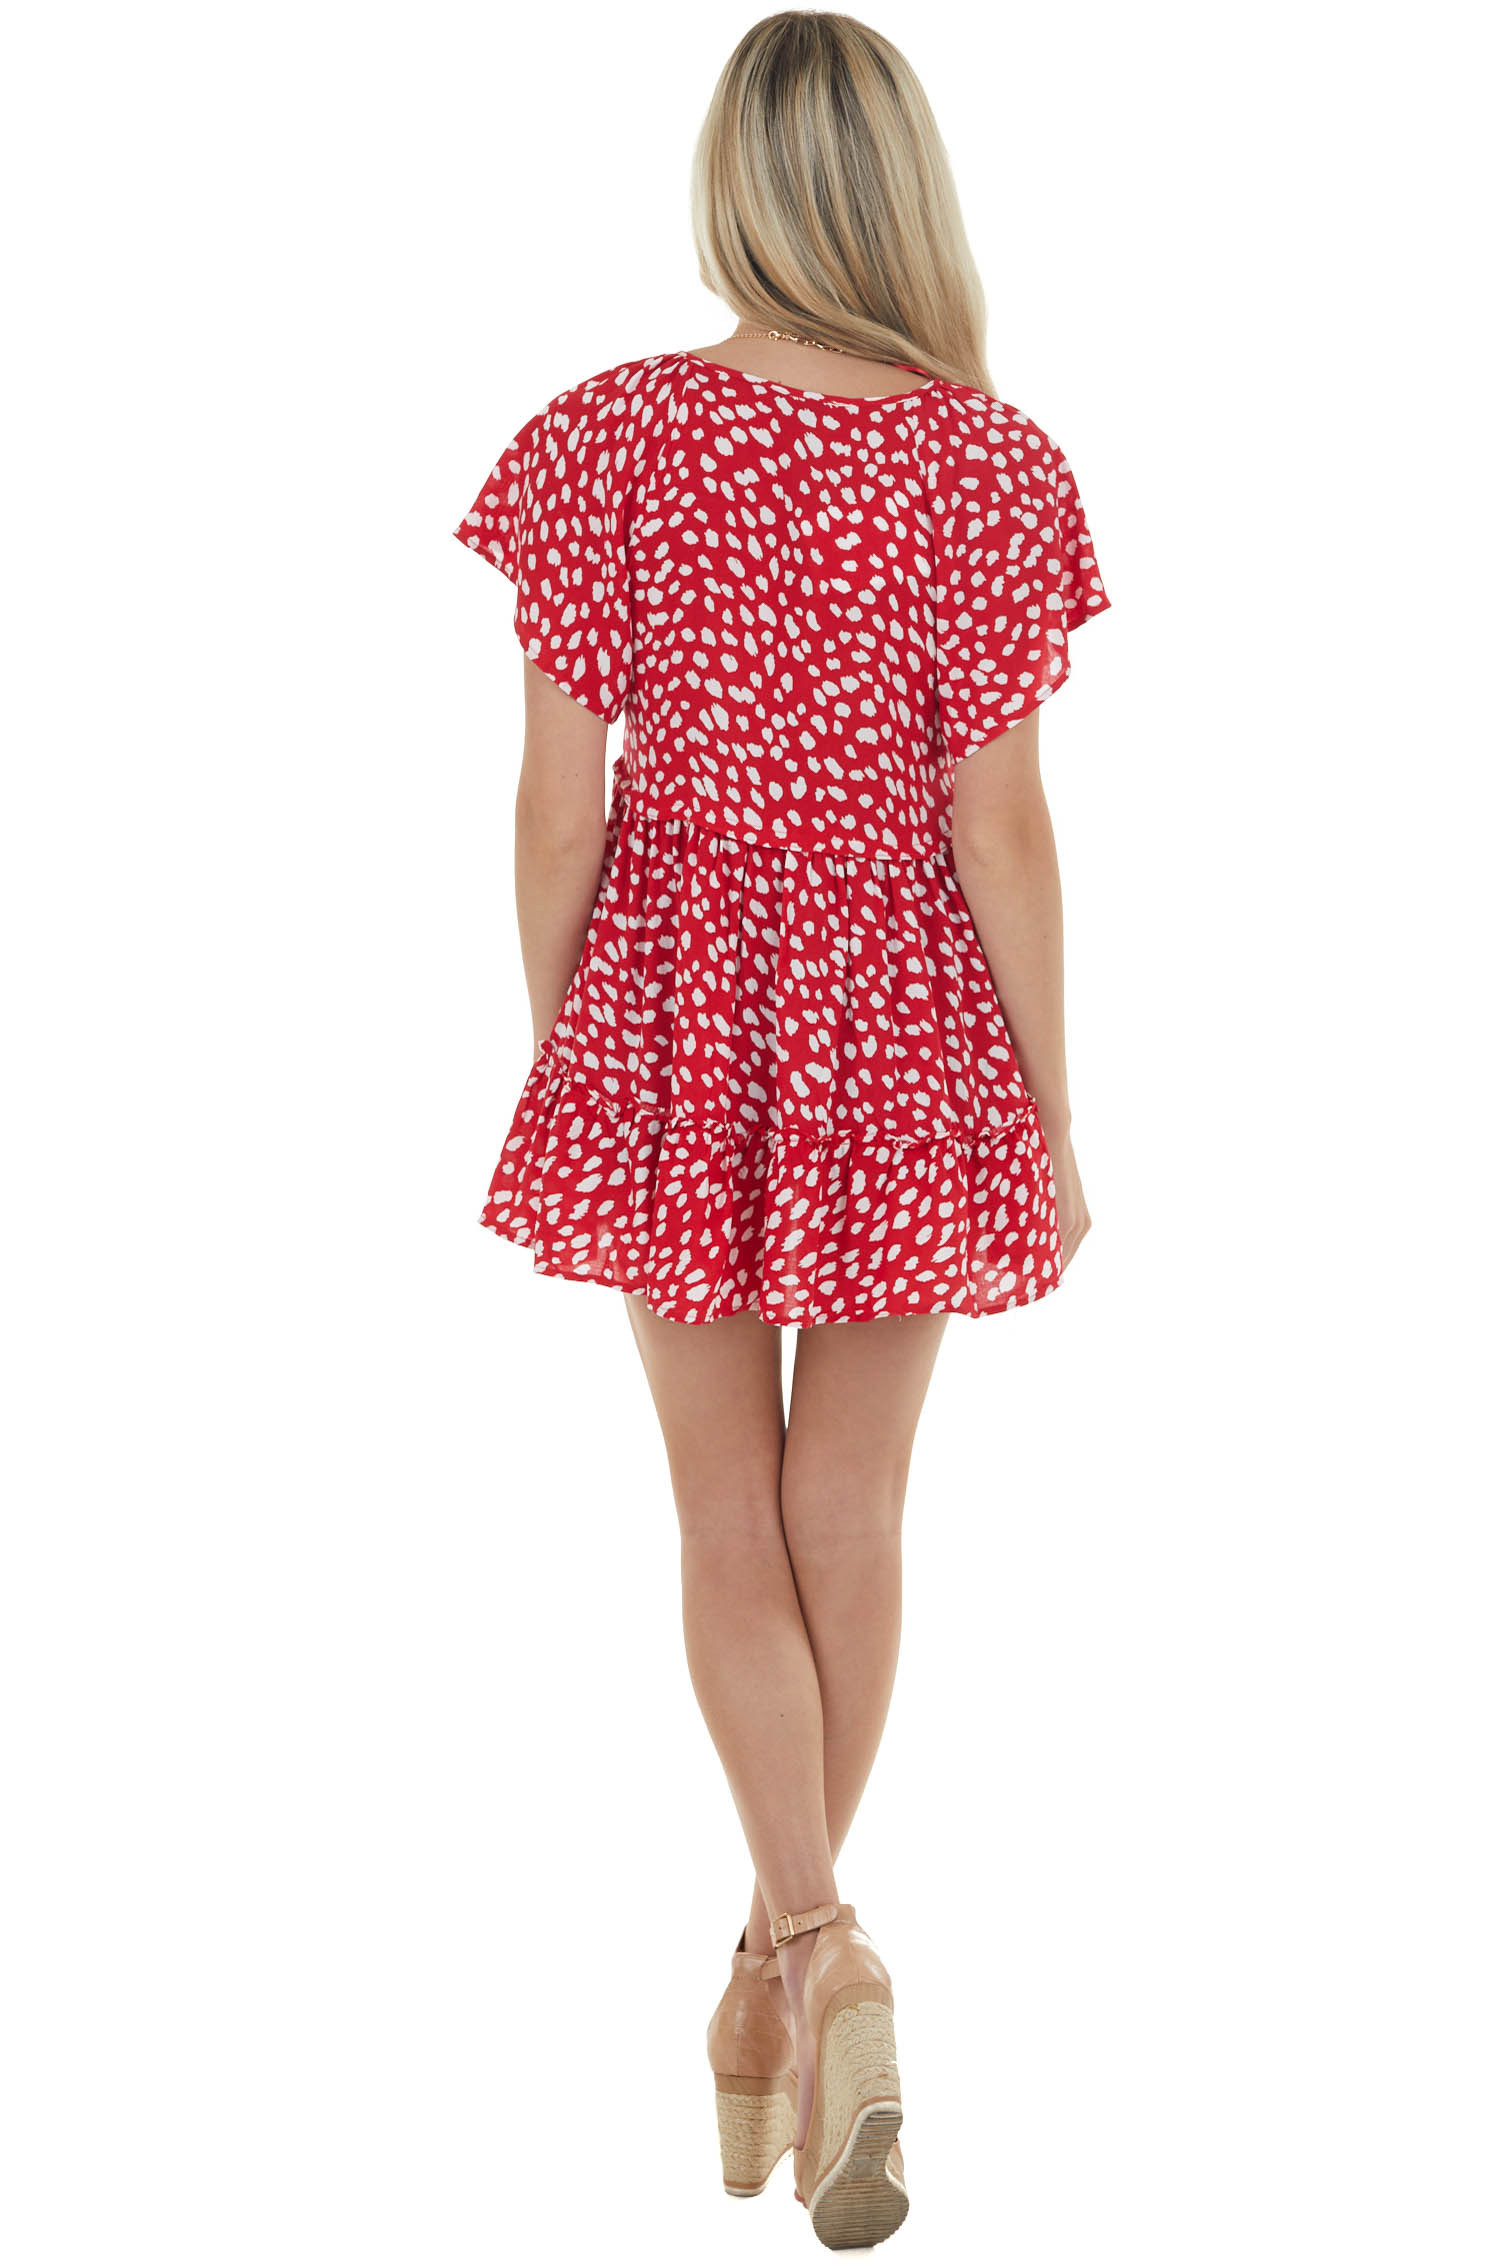 Red and Ivory Polka Dot Babydoll Tunic Blouse